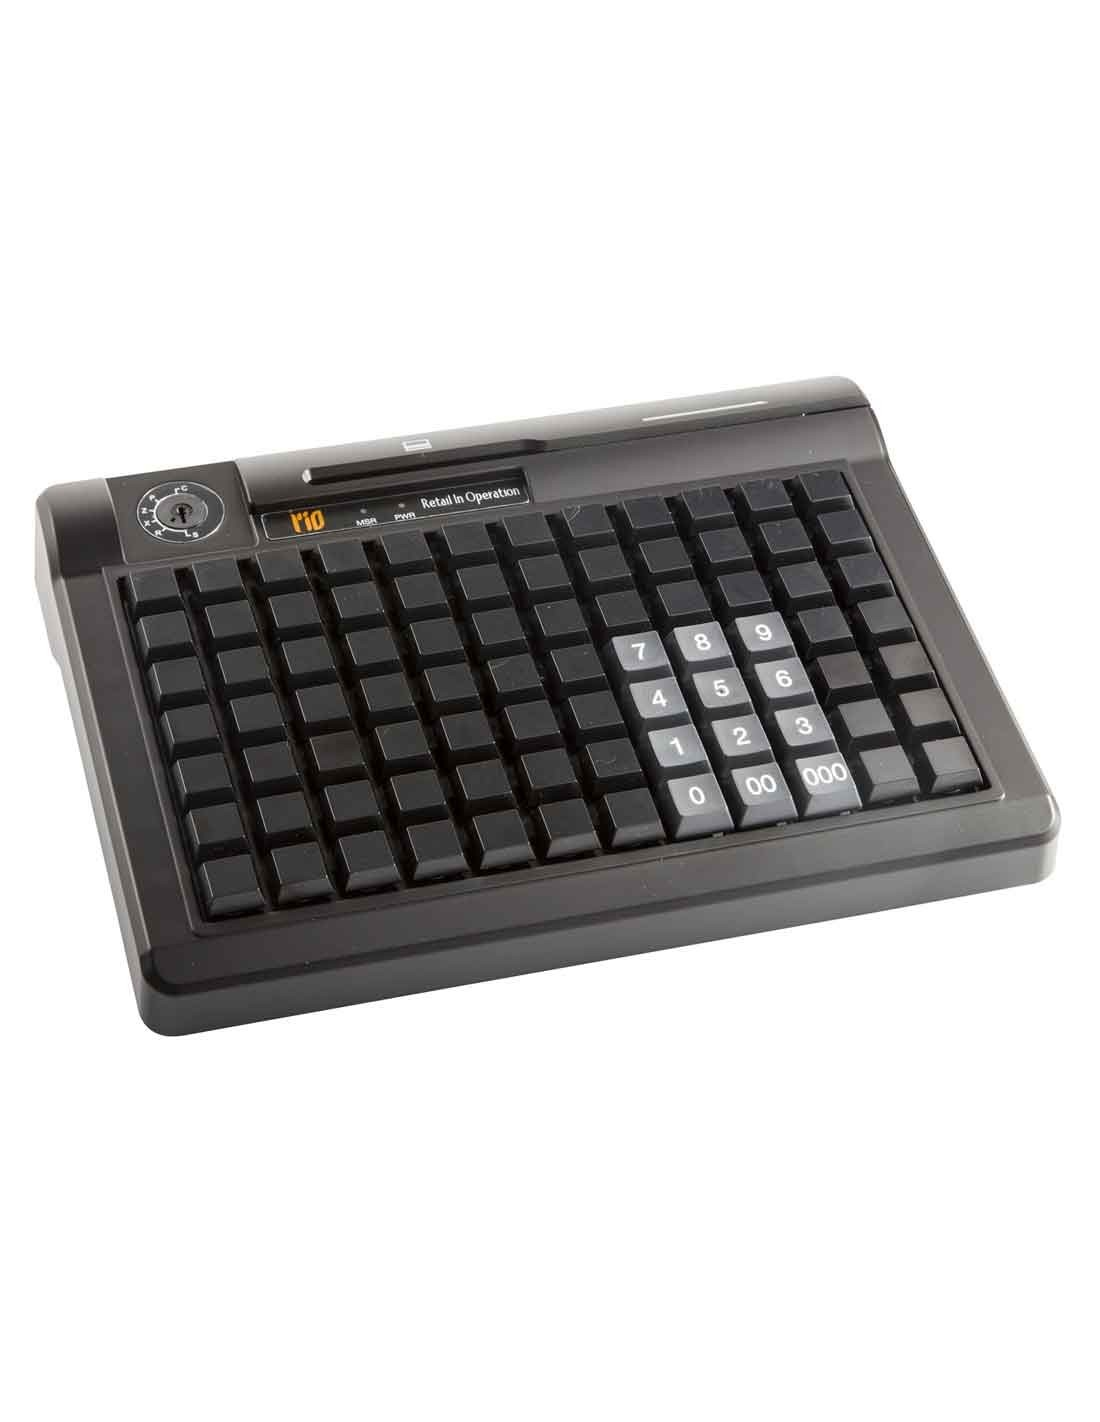 RIO 304 POS Programmable Keyboard at a Cheap Price in Dubai Online Store